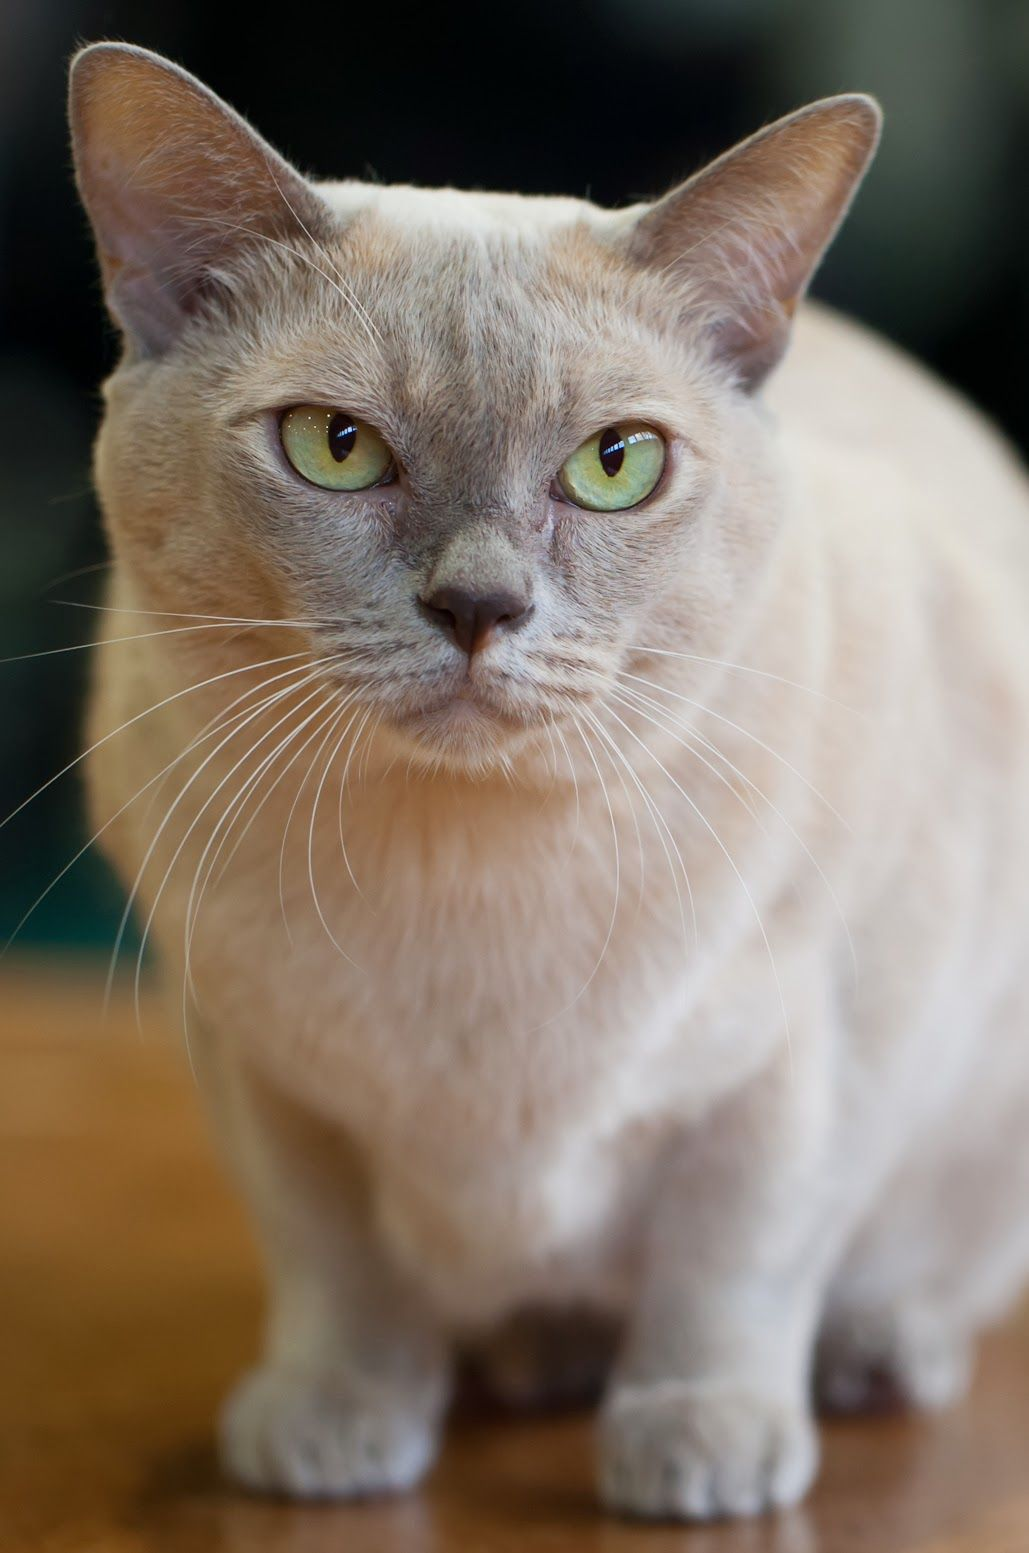 Size And Weight Of Burmese Cats Annie Many Cat Breeds Burmese Cat Cats